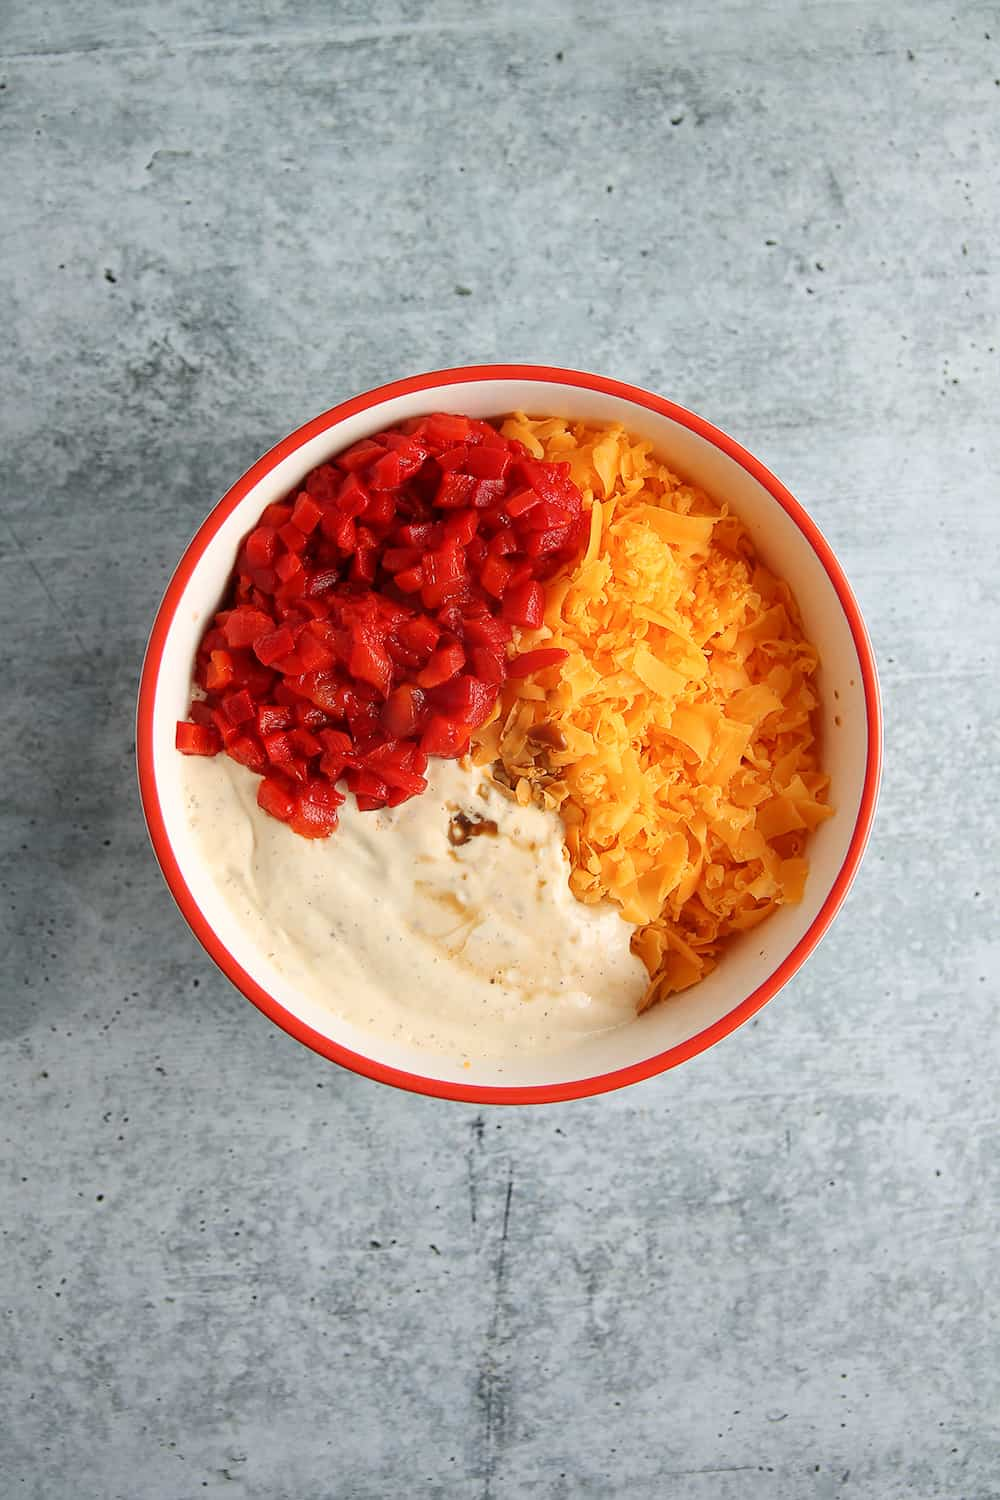 Overhead view of bowl with diced pimentos, shredded cheddar cheese and mayonnaise